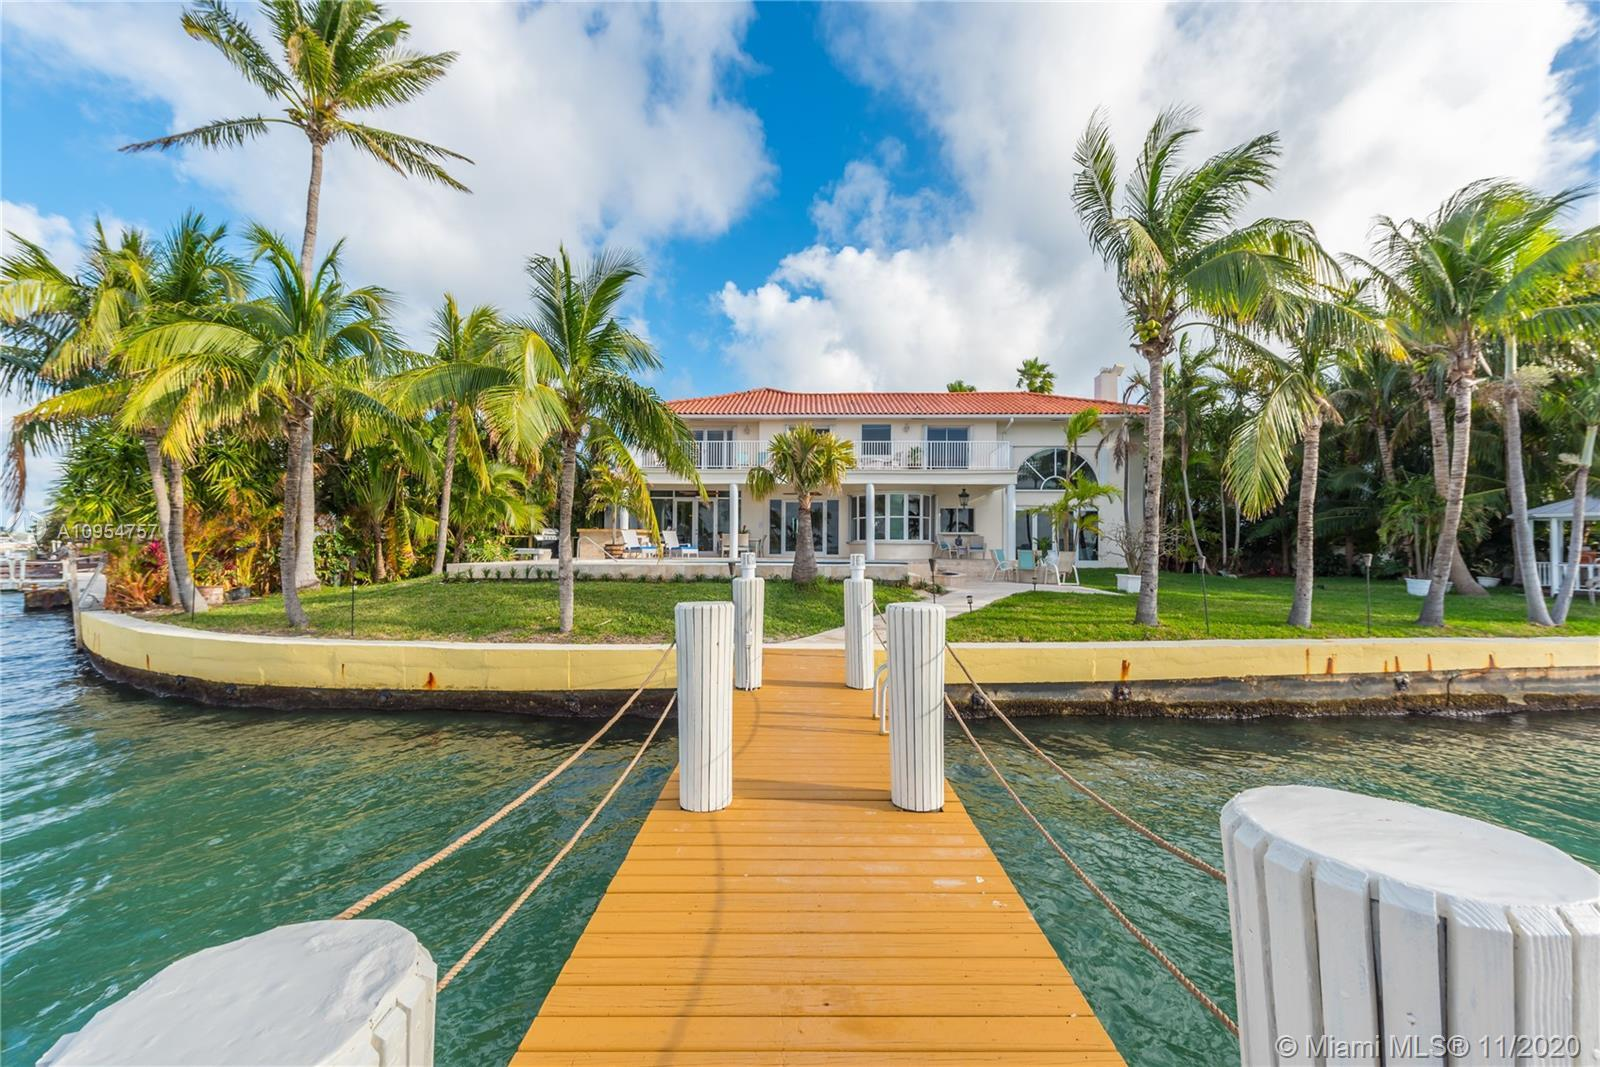 Exquisite home on peak of a gated street on a peninsula in Miami Beach. This 5/3.5 home offers safet